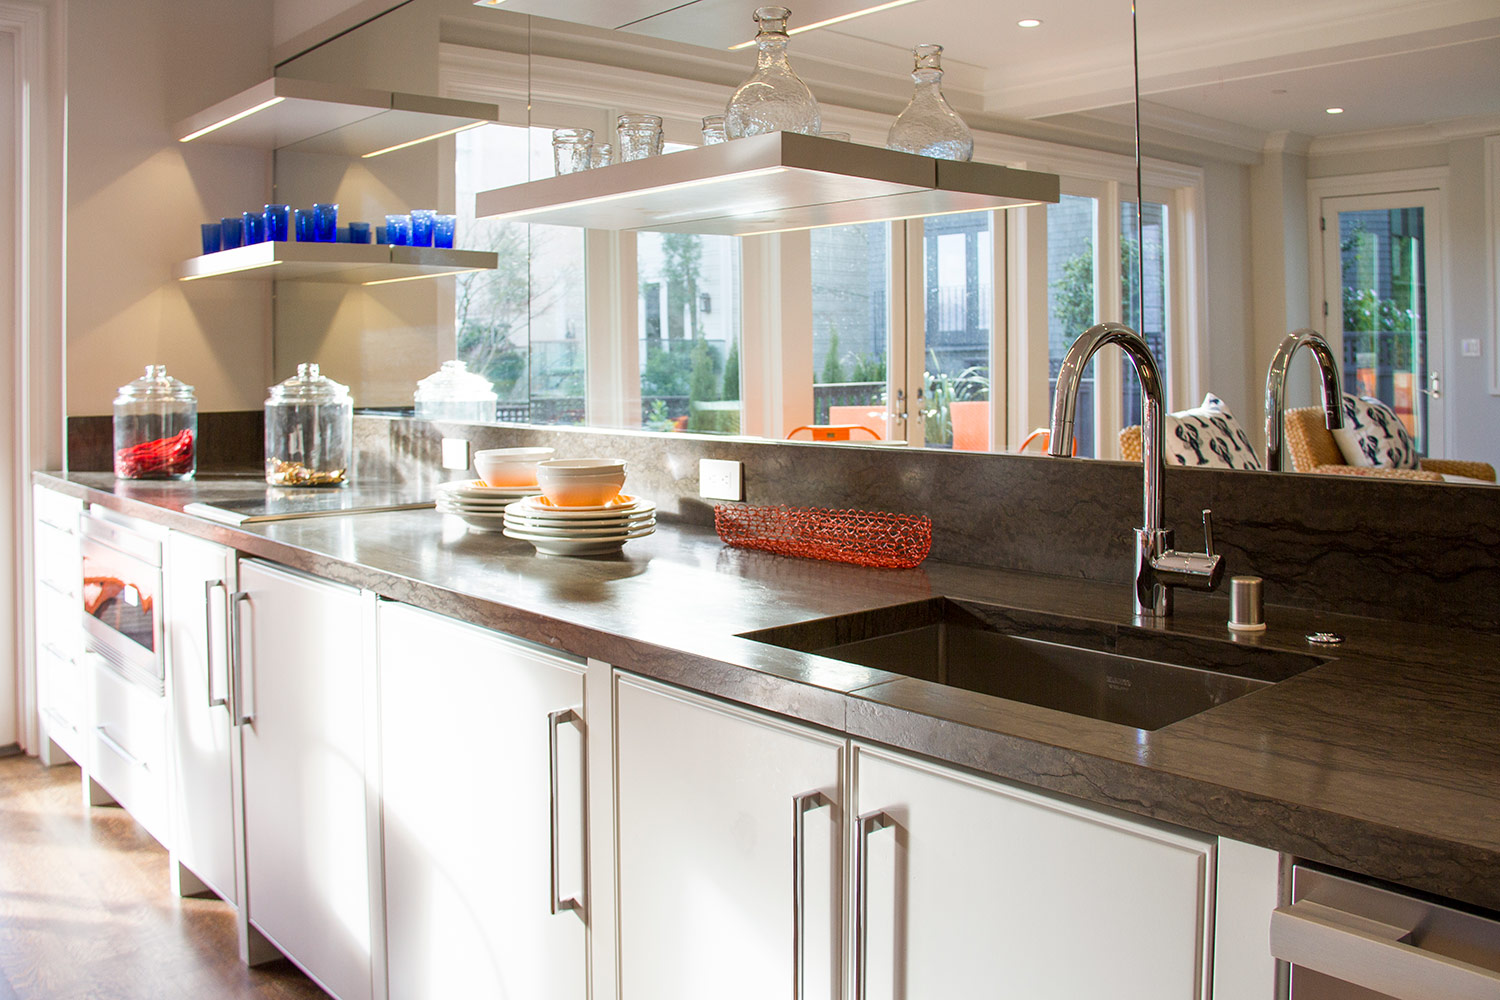 kitchen, countertop, glass, mirror, open cabinets, white, sink, faucet, open shelving